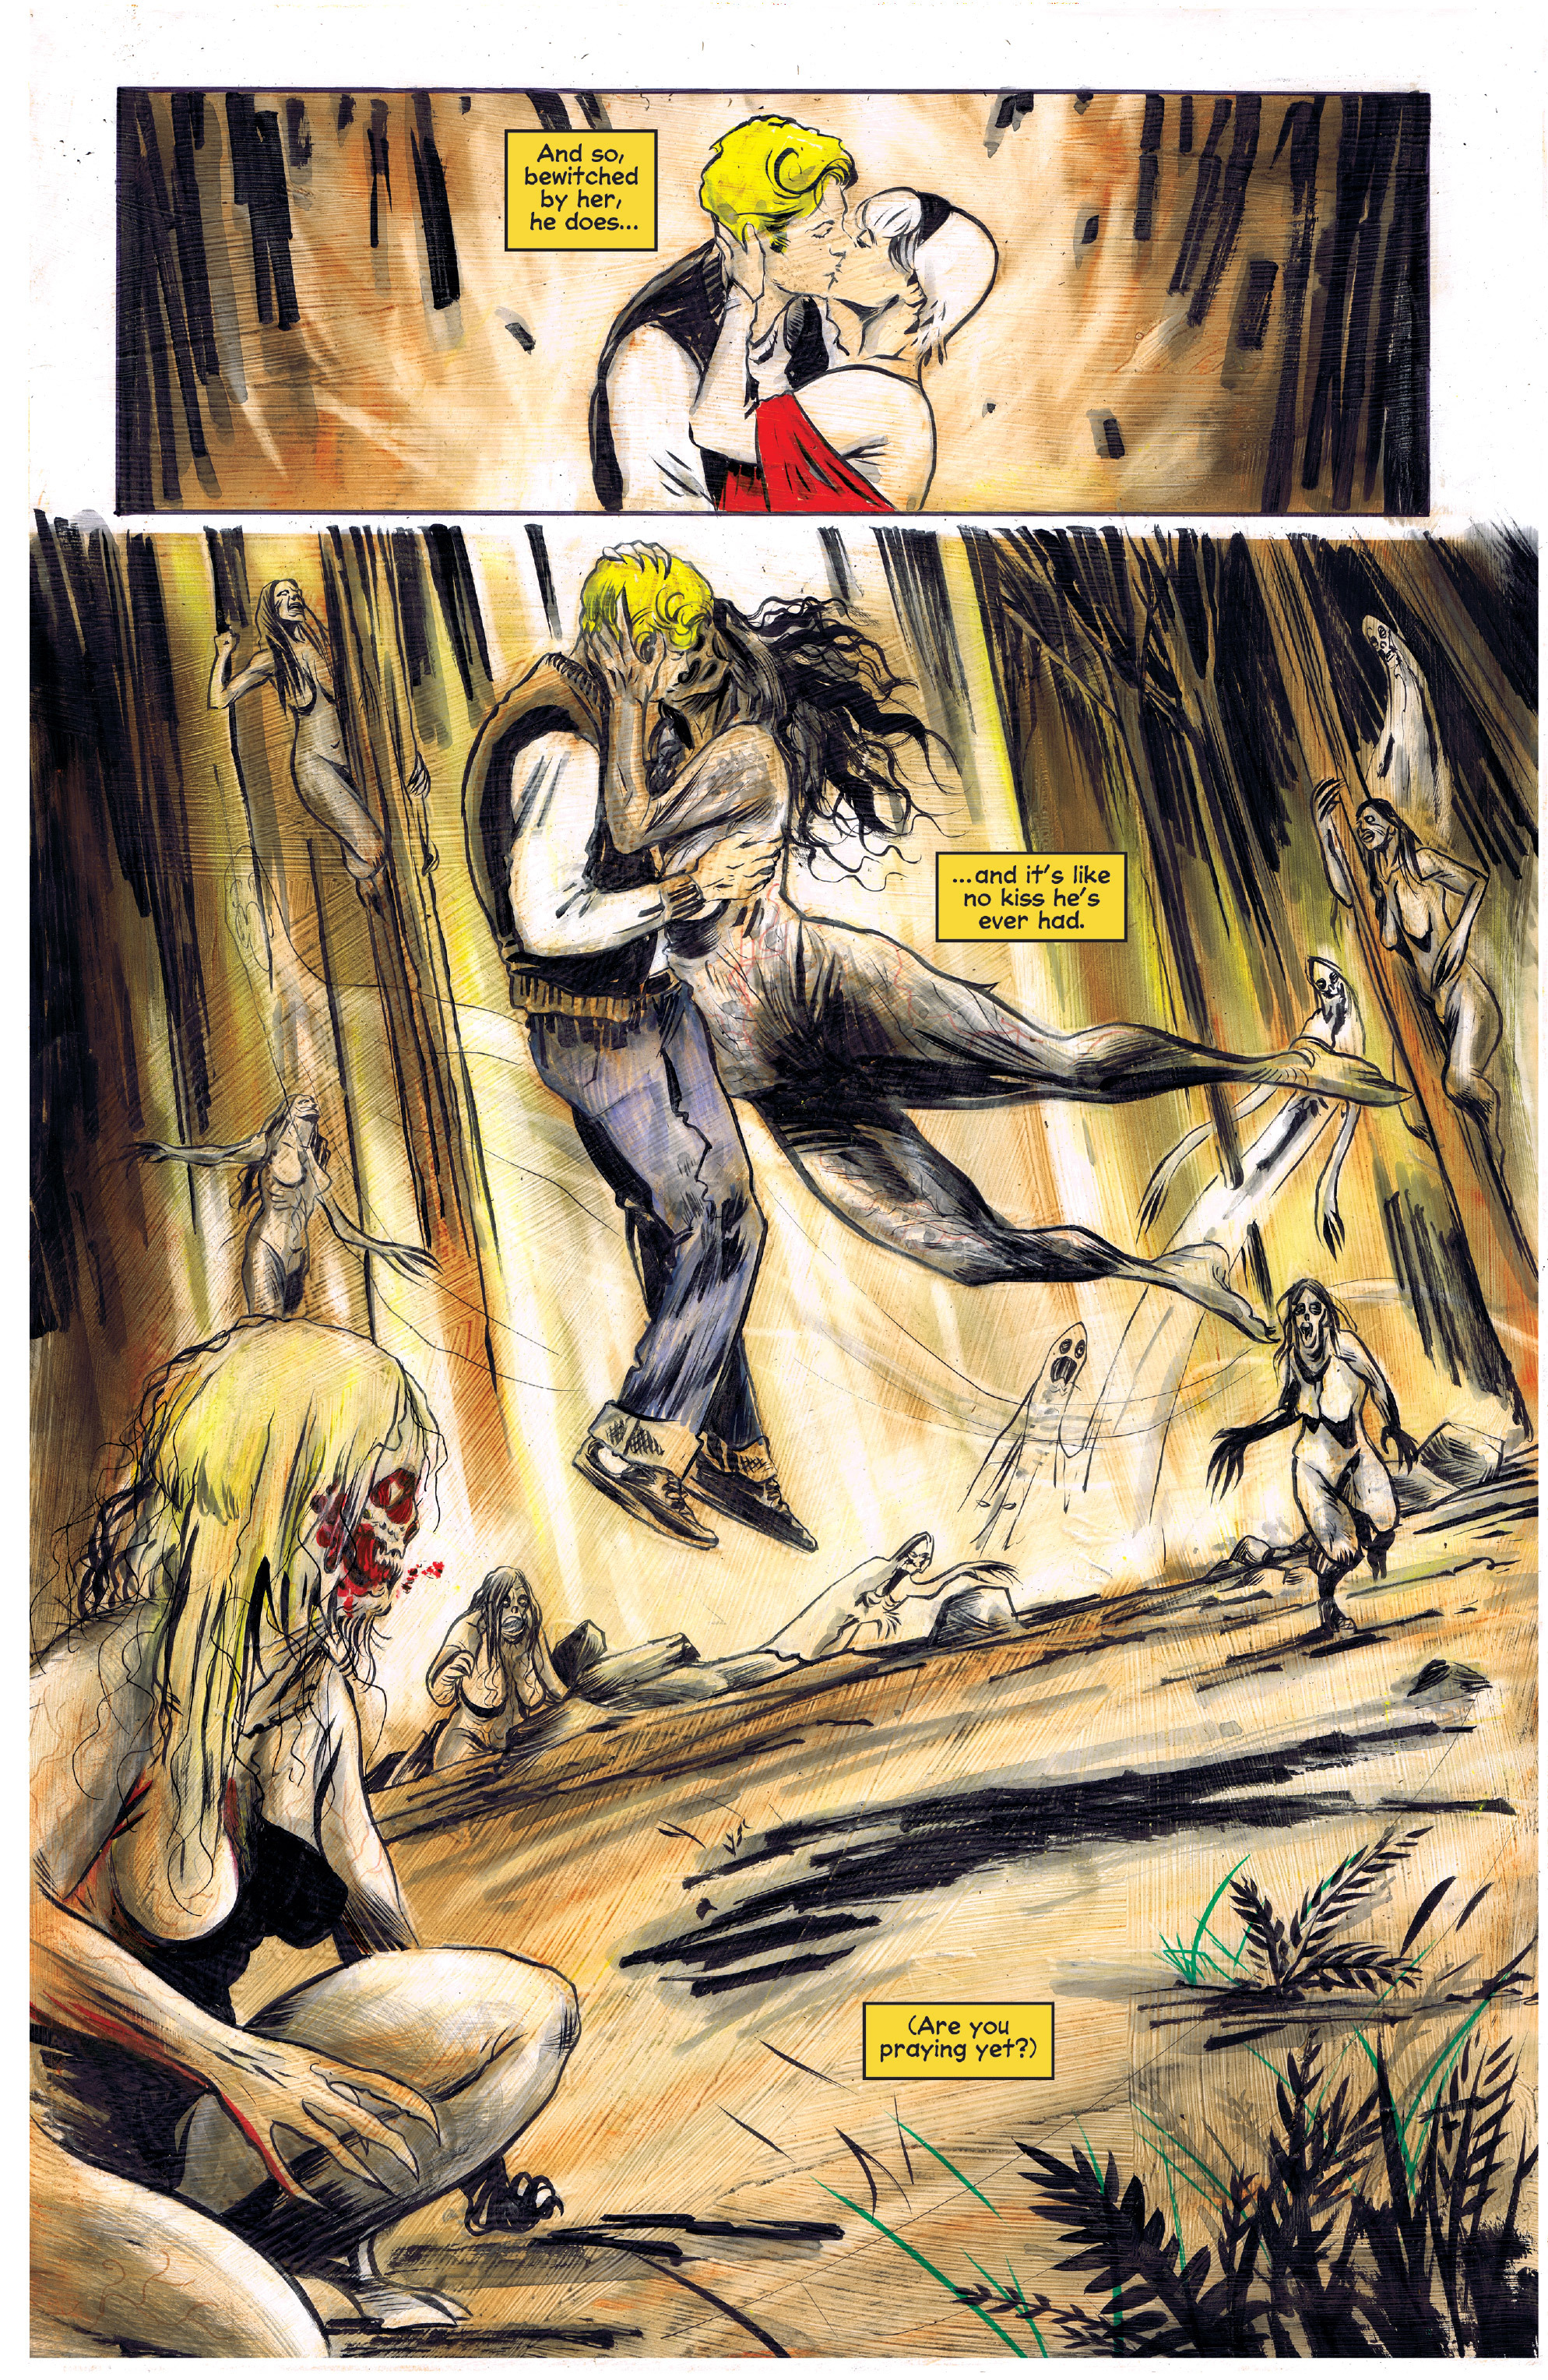 Forest full of monstrous ghosts of witches: Chilling adventurous of Sabrina: spooky comics